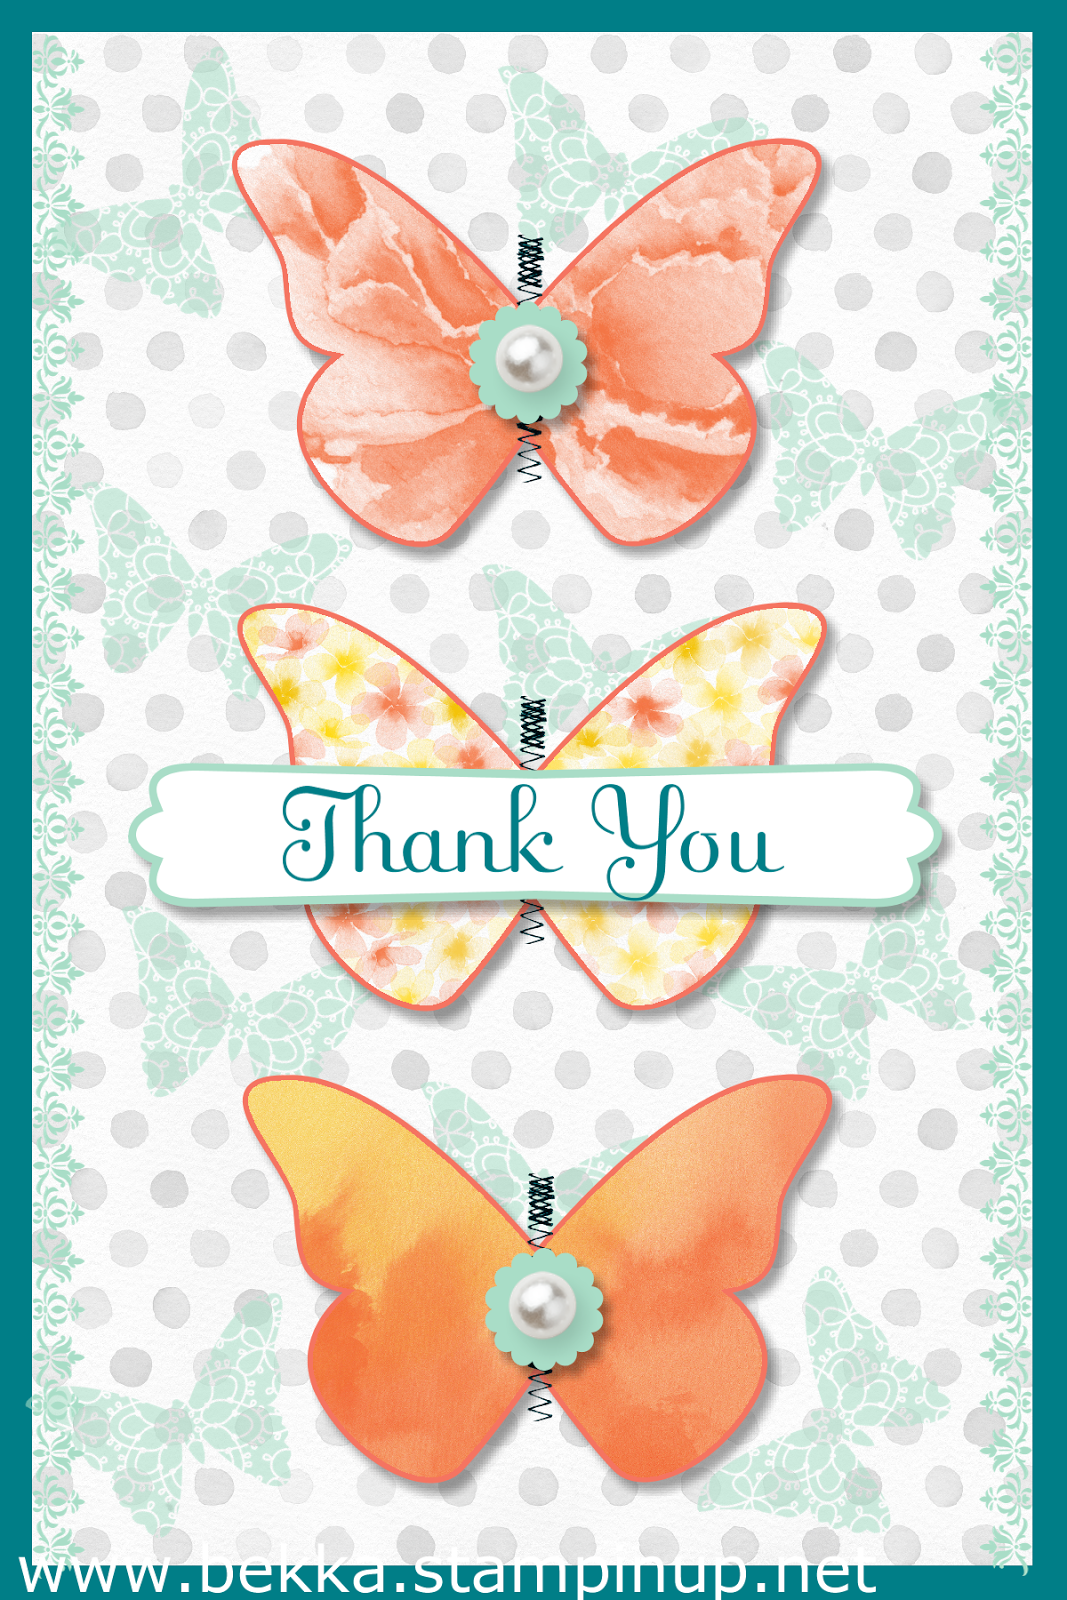 Happy Watercolour DIgital Butterfly Card by Stampin' Up! UK Independent Demonstrator Bekka - check her blog for Digital Crafting ideas every Monday